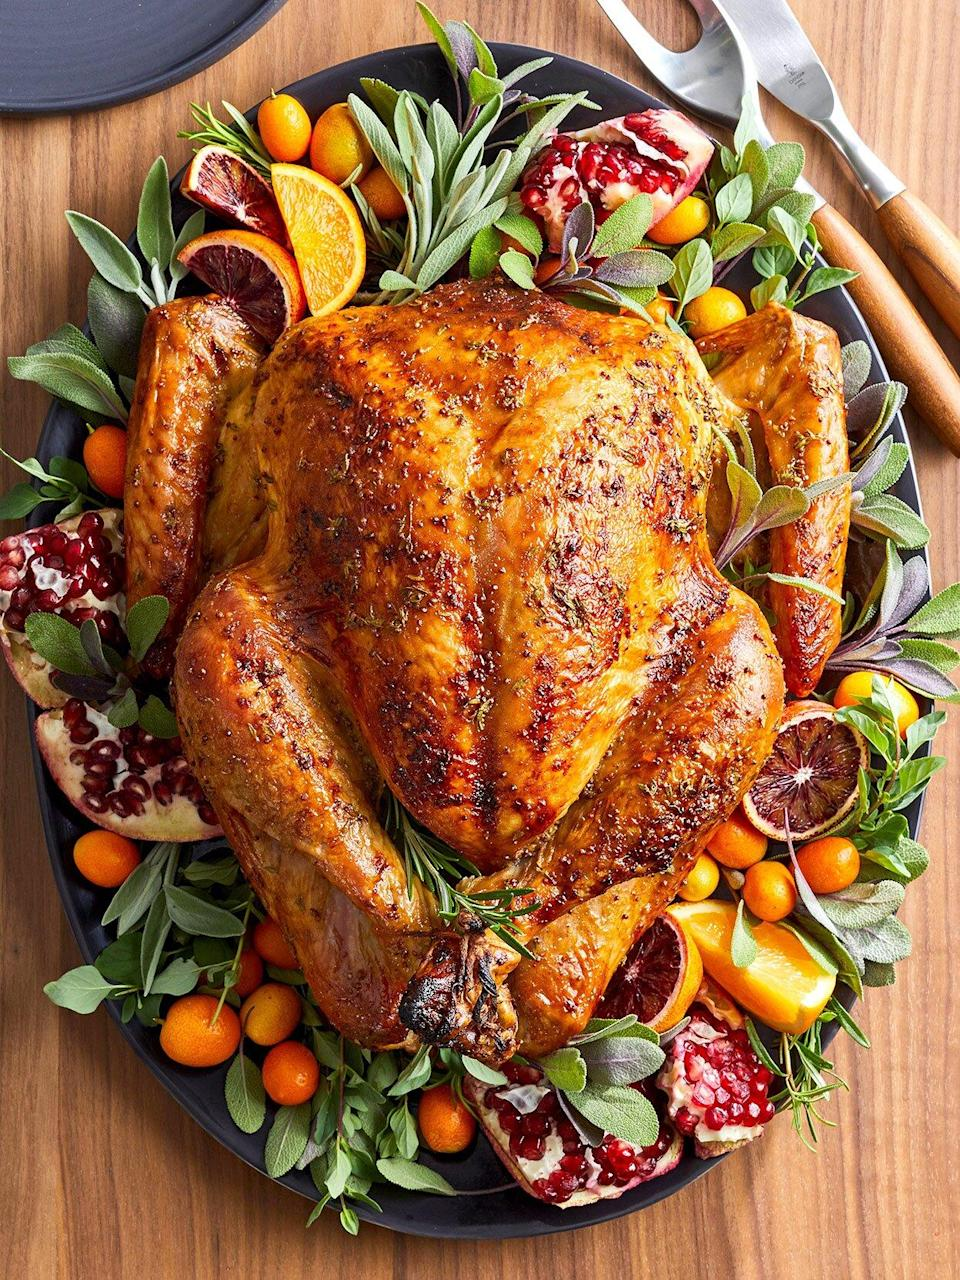 The Best Thanksgiving Turkey Recipes From Classic to Creative